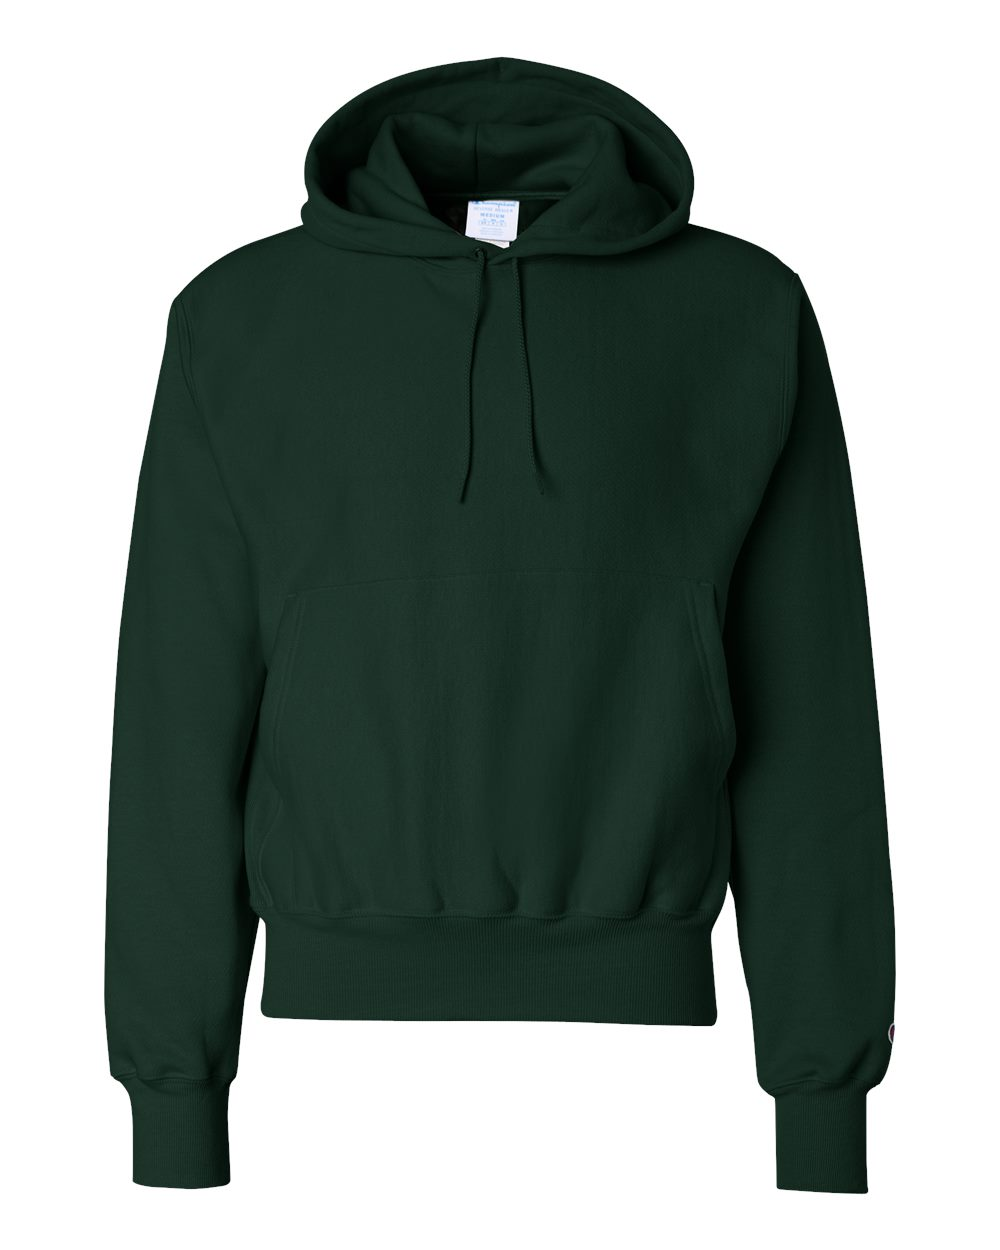 Champion-Mens-Reverse-Weave-Hooded-Pullover-Sweatshirt-S101-up-to-3XL thumbnail 24